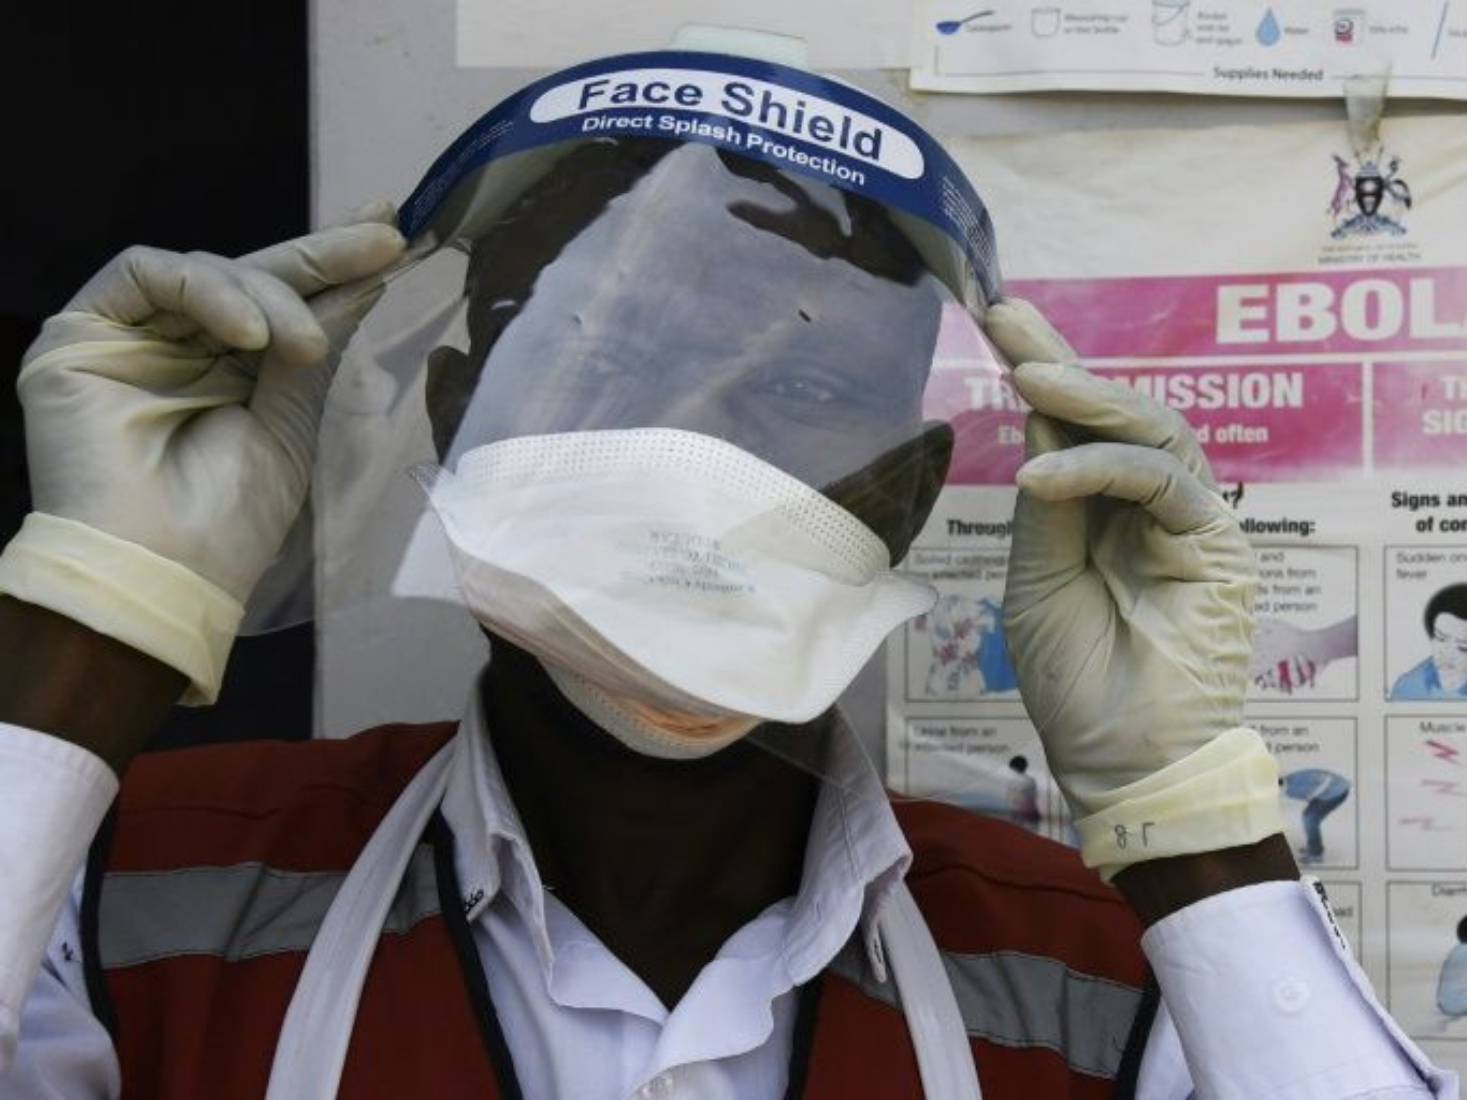 Second Ebola vaccine to be introduced in DRC in mid-October: WHO